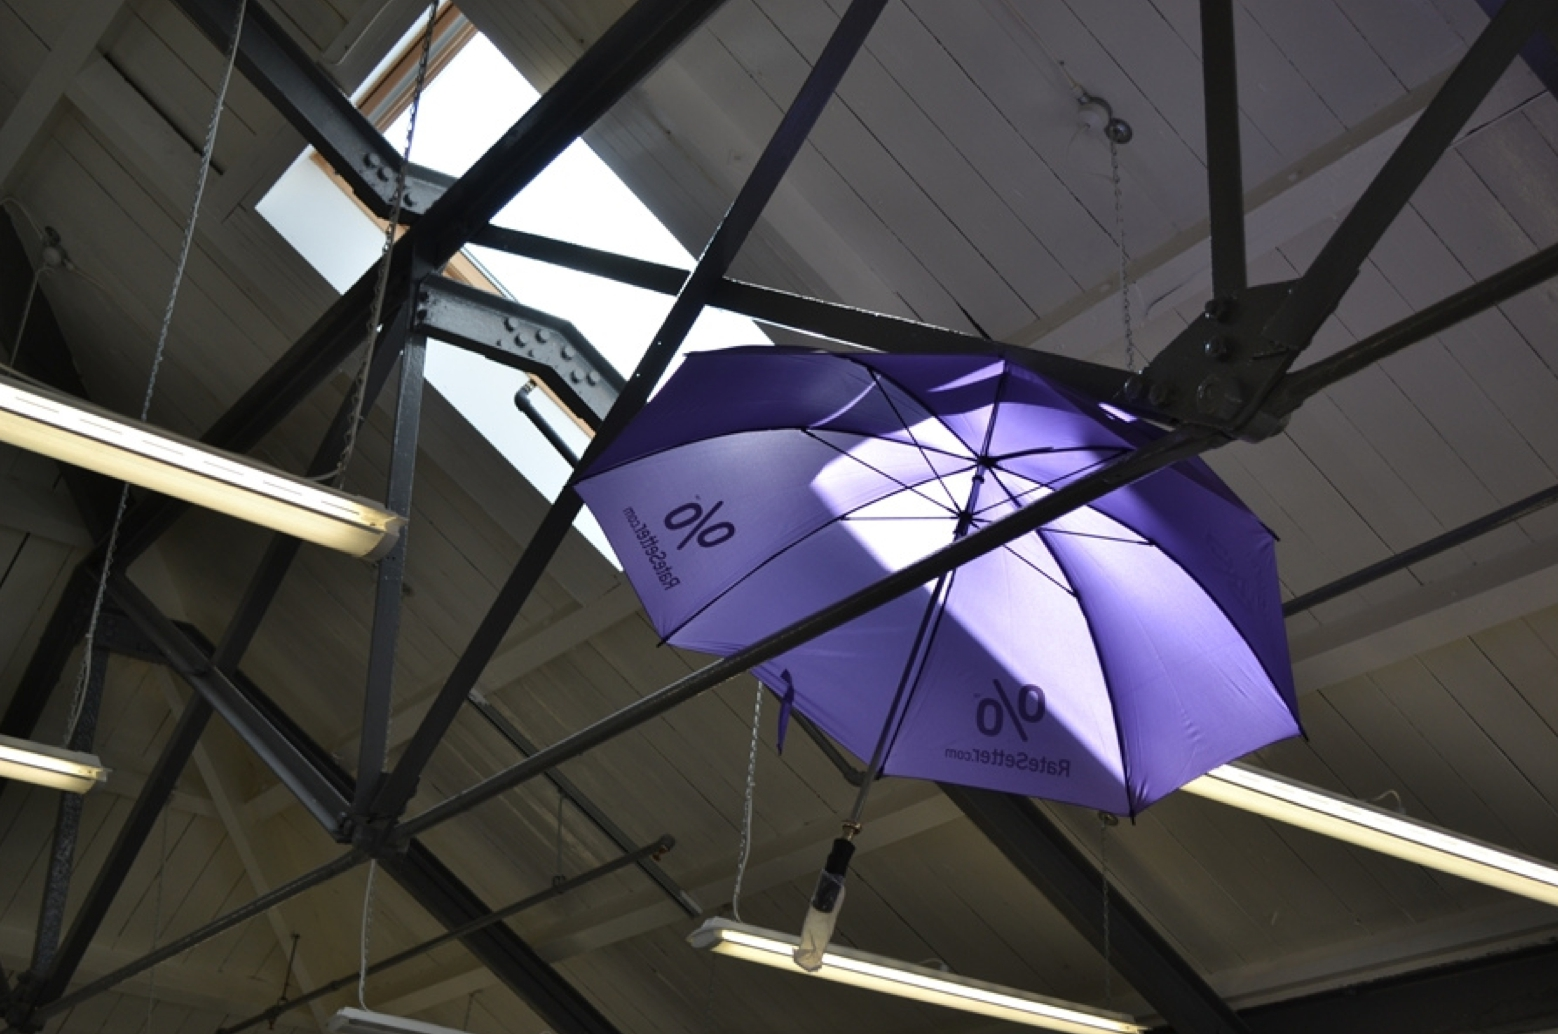 Boost Custom Printed Umbrellas